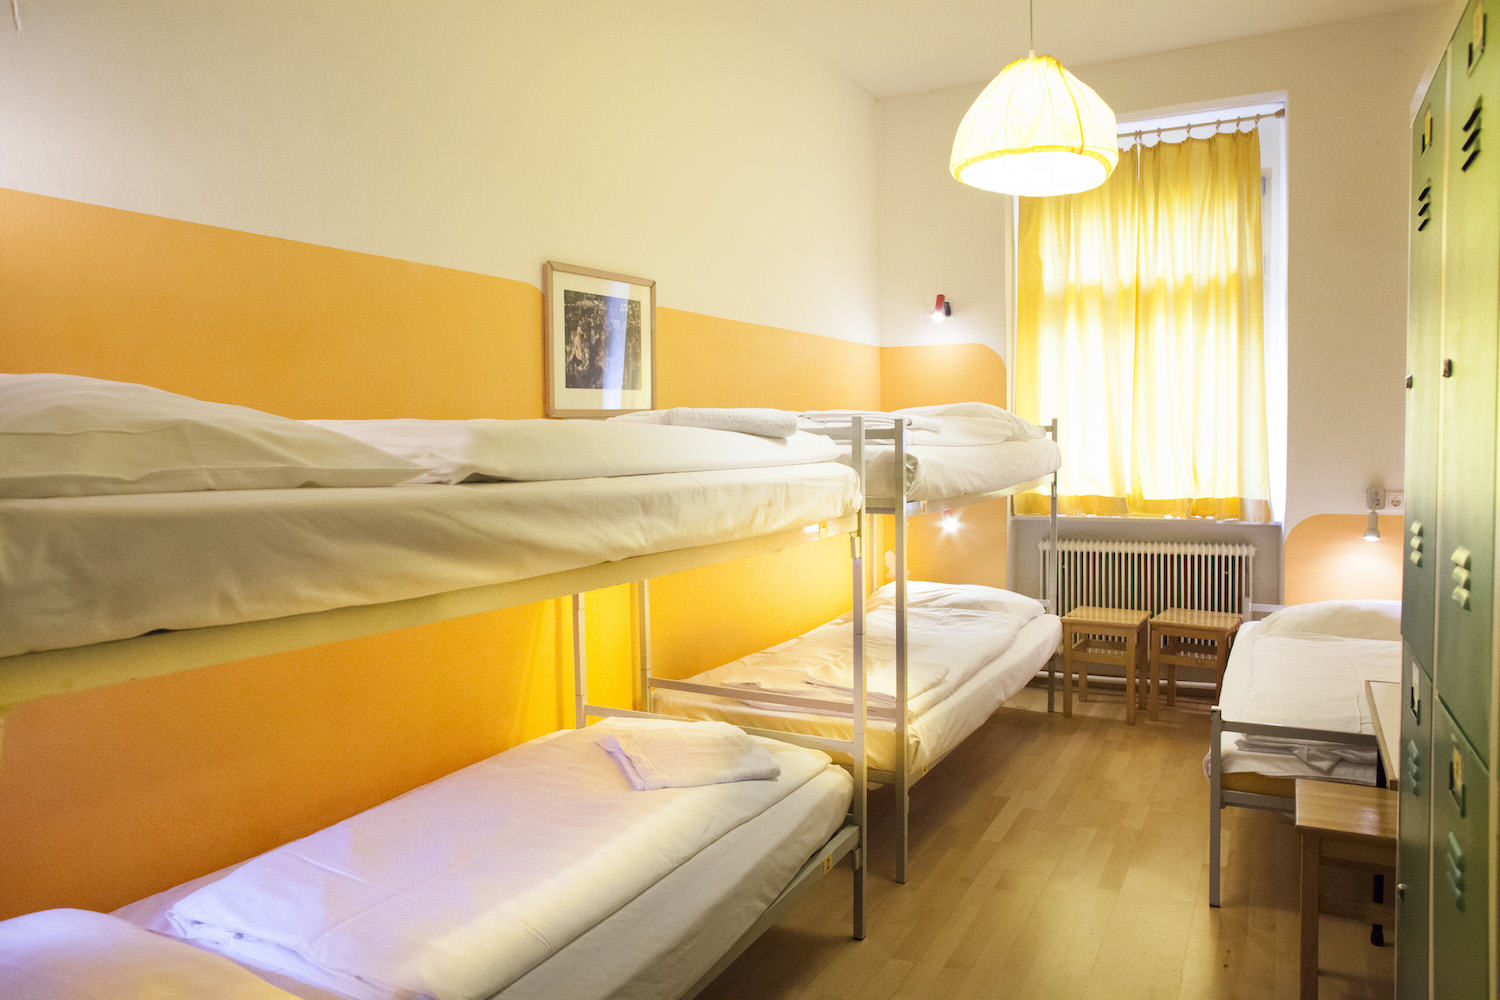 Vienna hostel ruthensteiner vienna hostel ruthensteiner 4 beds in one room